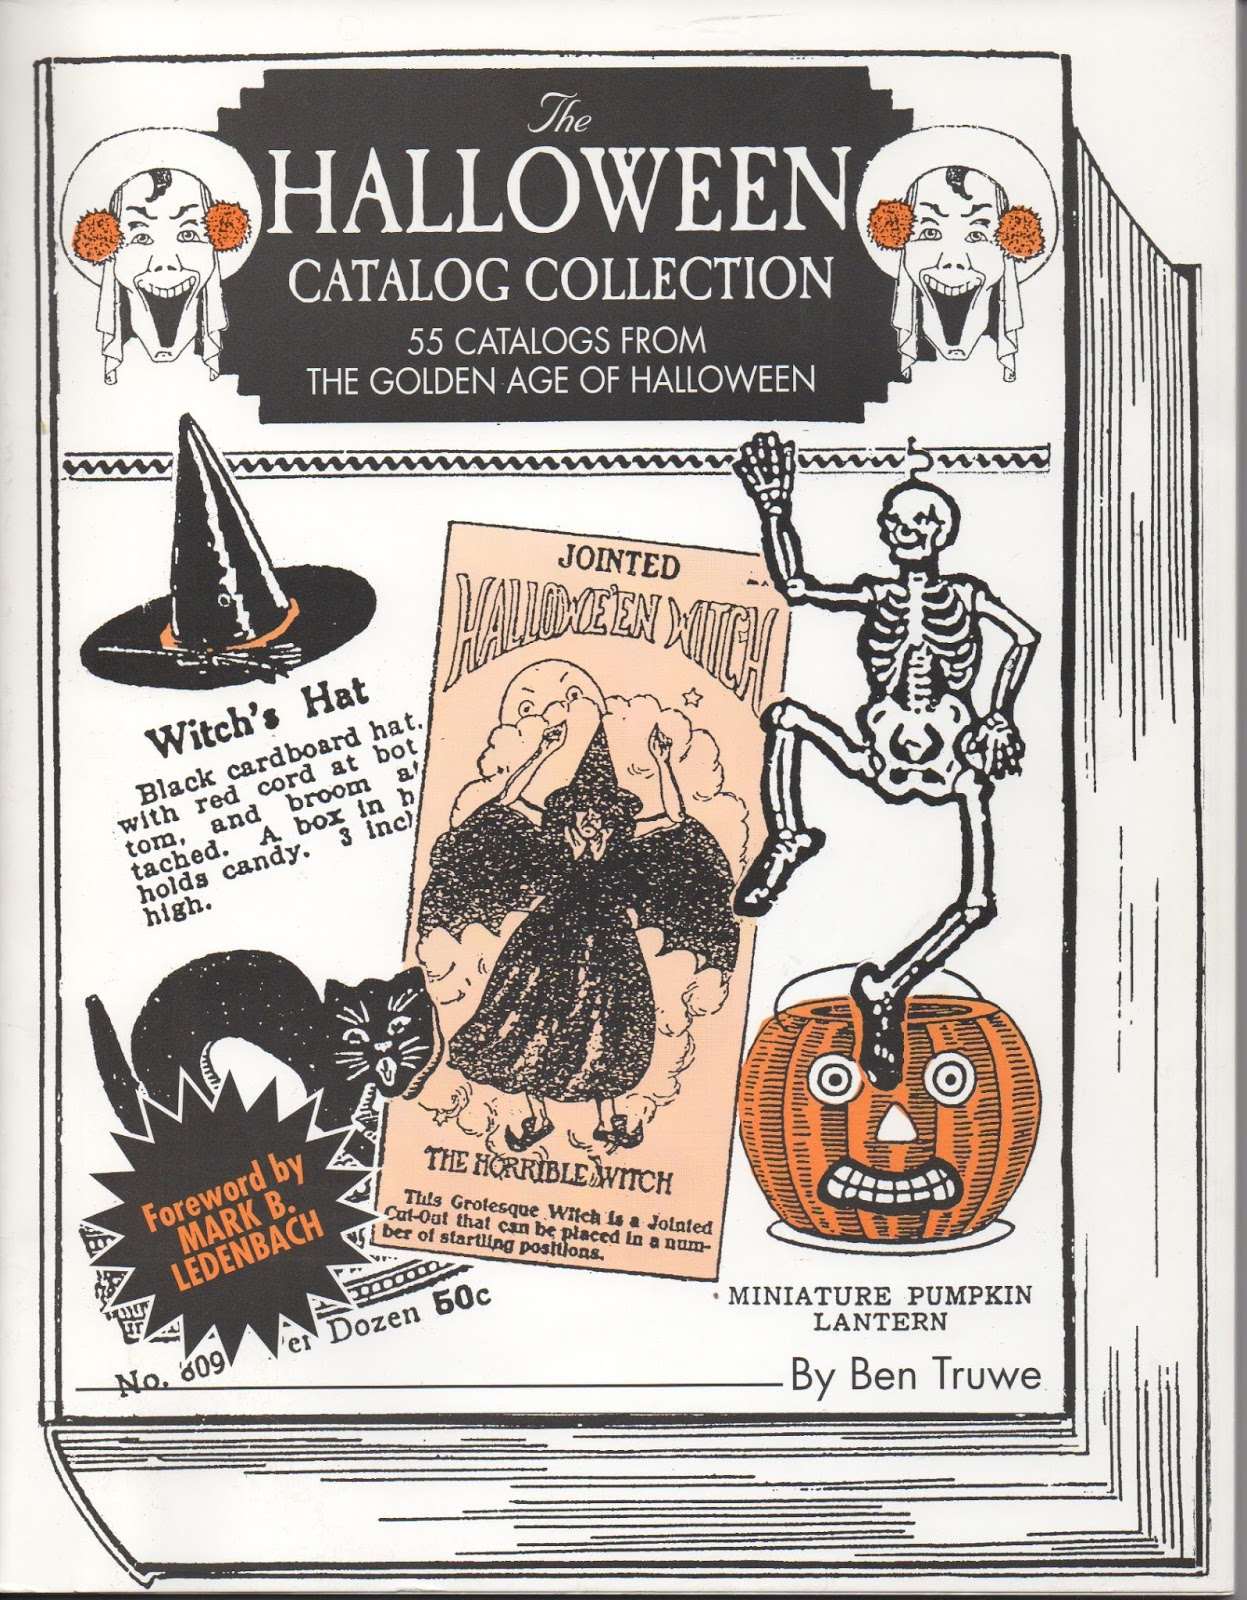 vintage halloween dennison party books and ben truwes halloween catalog collection reference on consignment from old fashion halloween - Halloween Catalogs